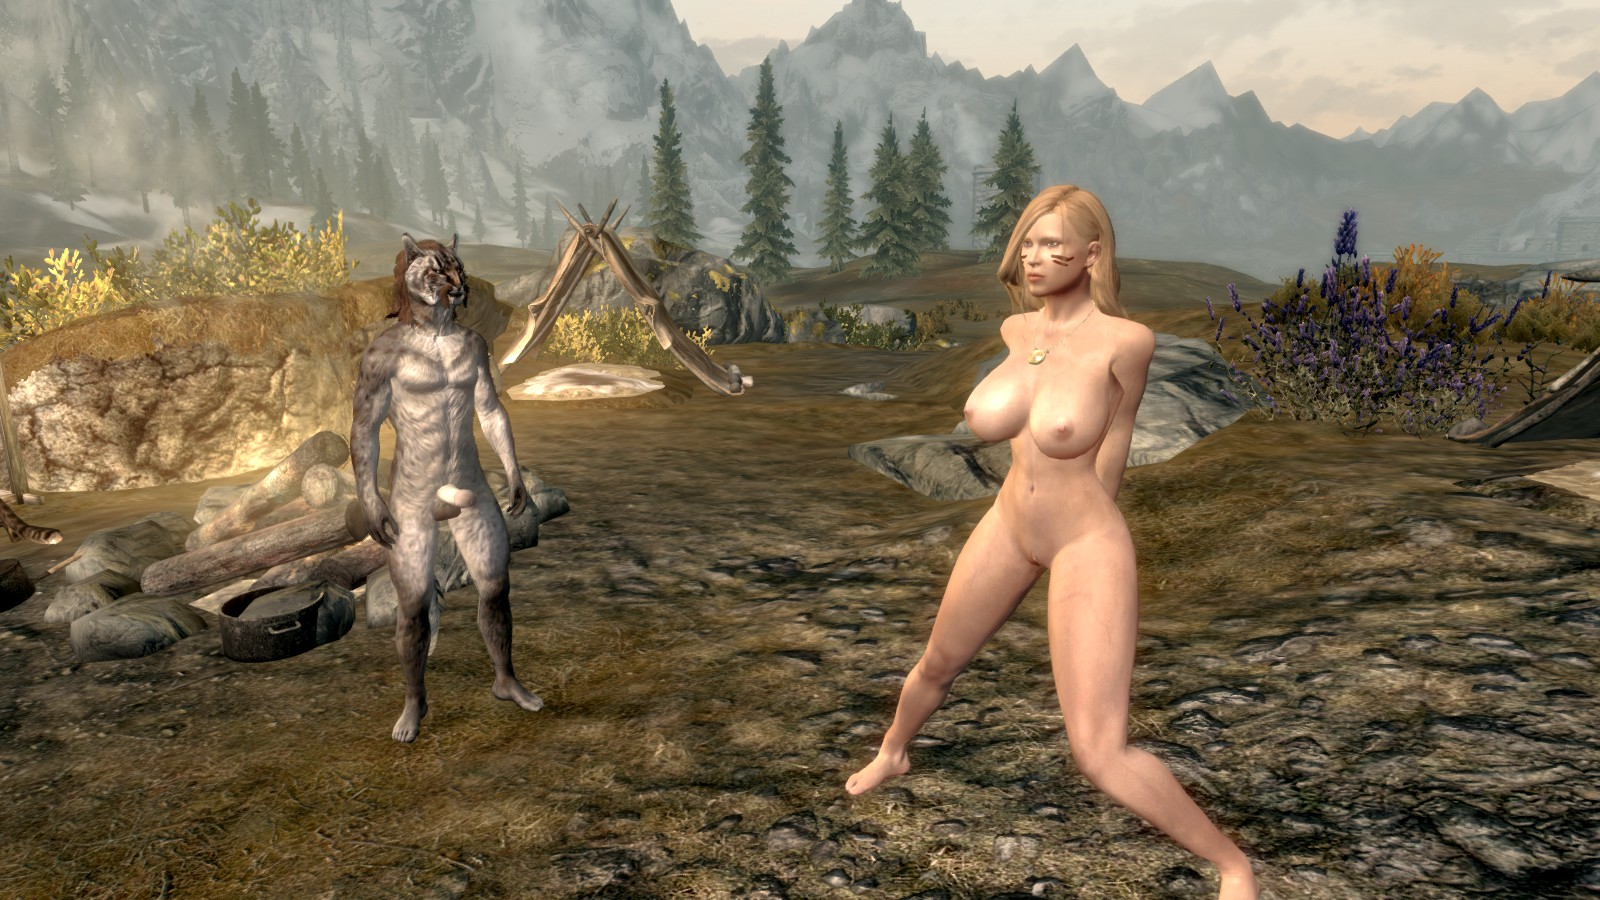 Skyrim khajiit rule 34 erotic galleries